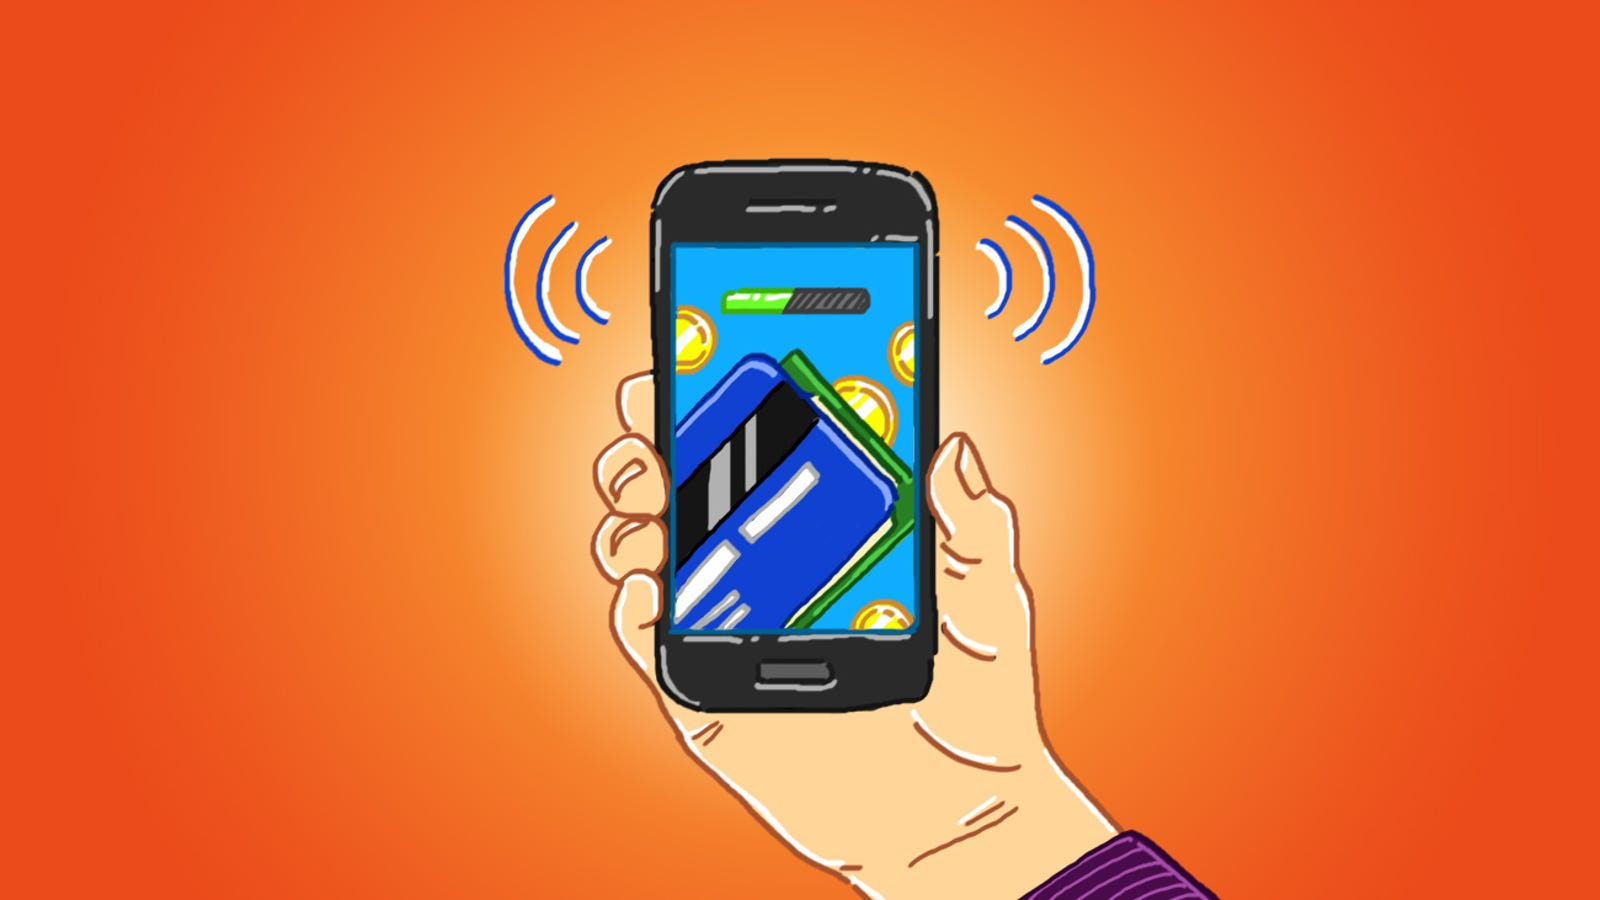 Do You Use a Mobile Payment App?